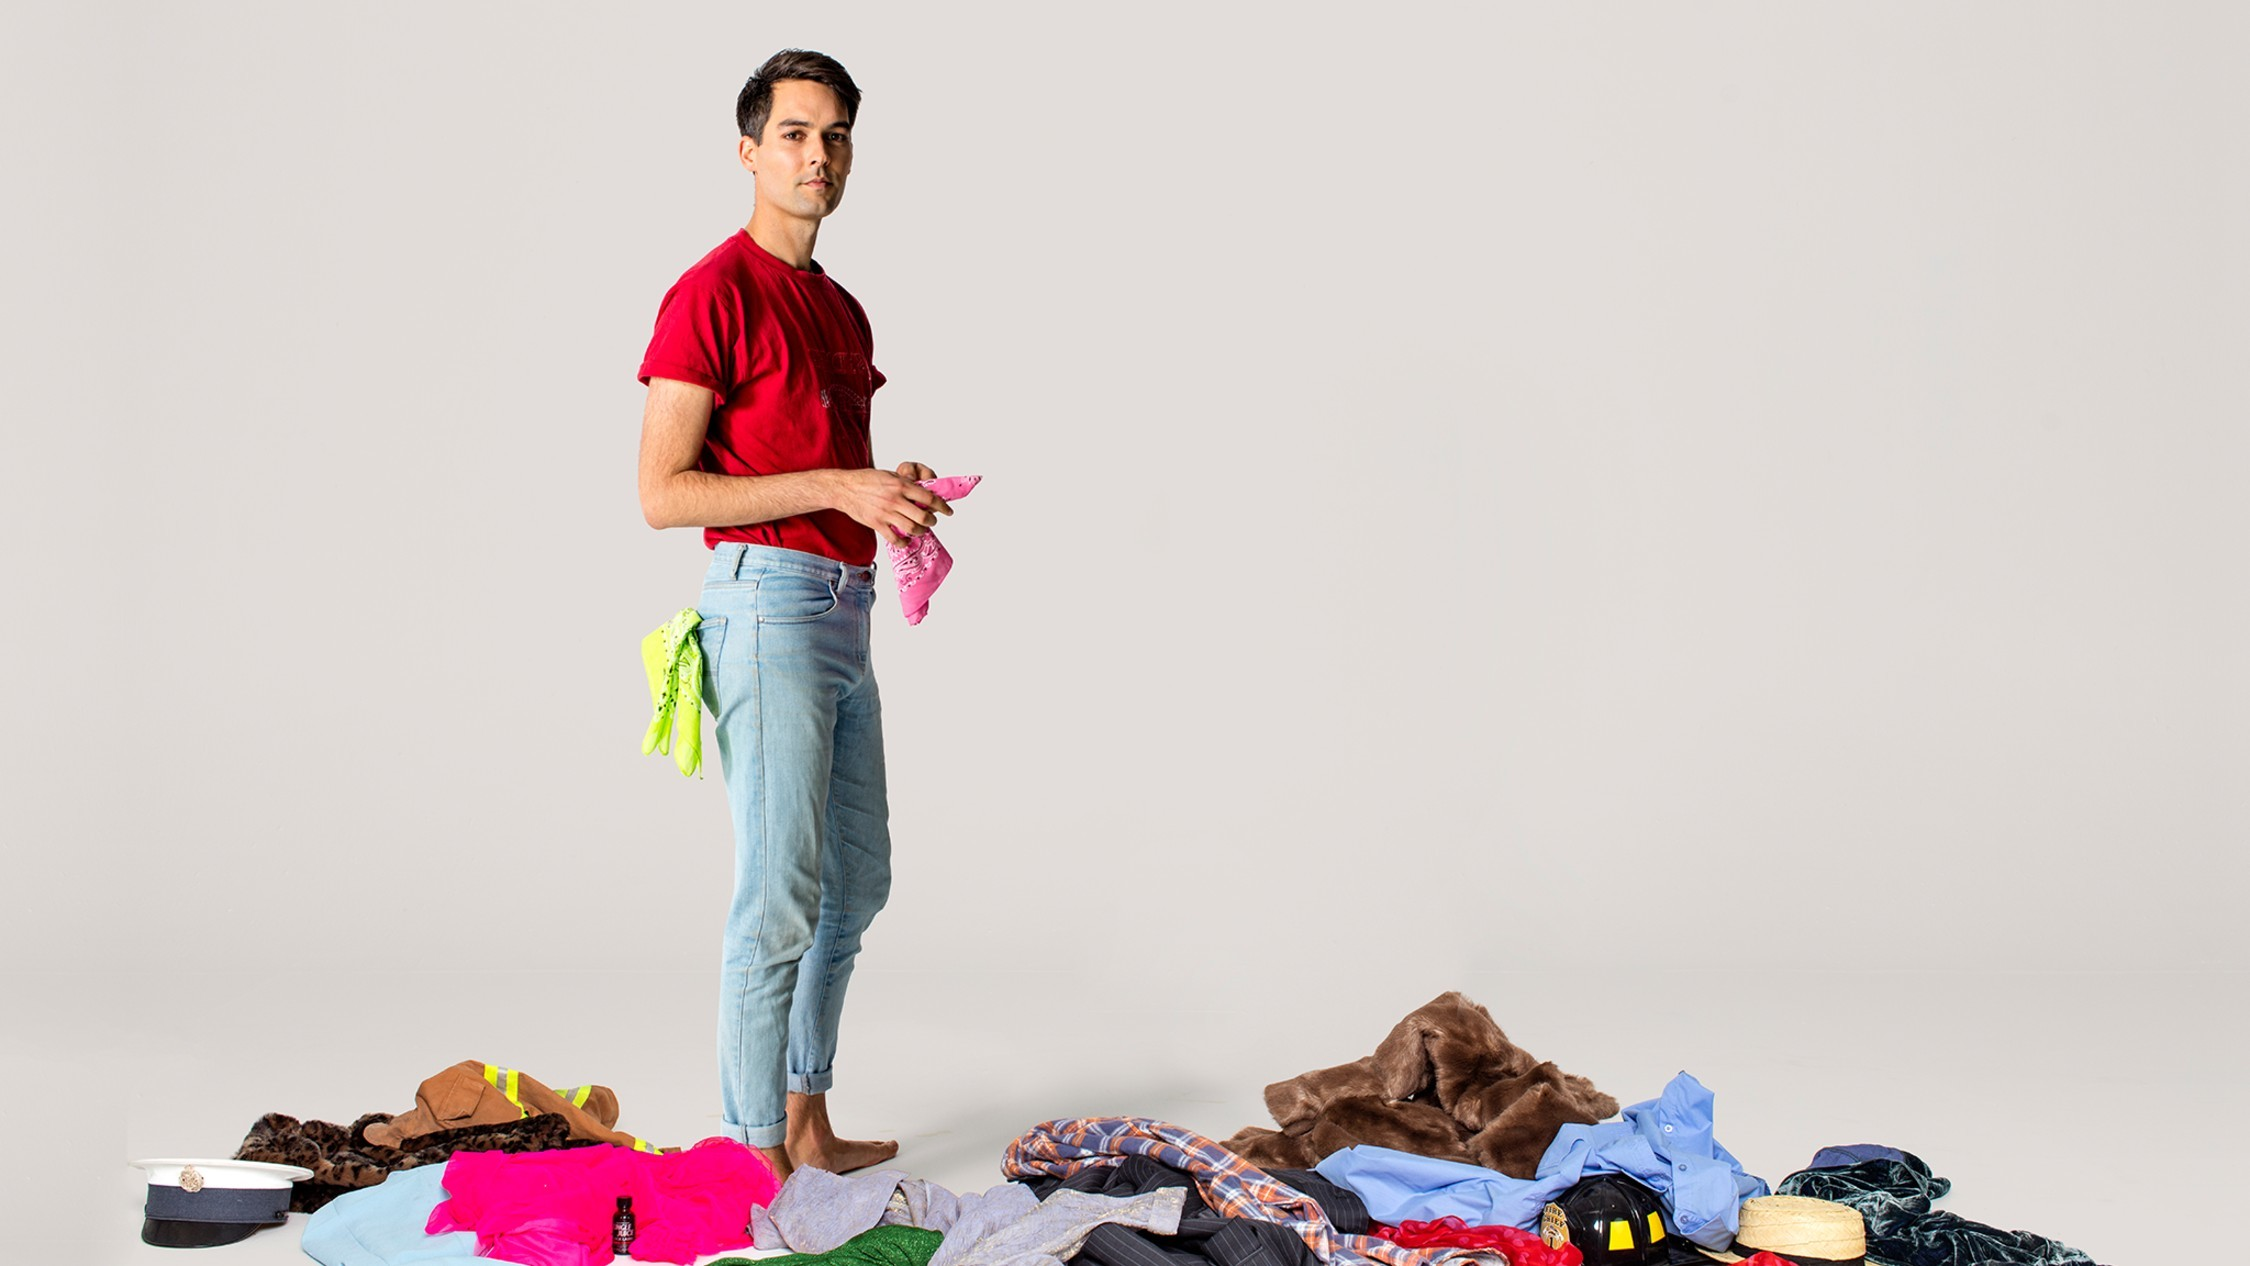 A man in jean and a red t-shirt stands in a pile of clothes